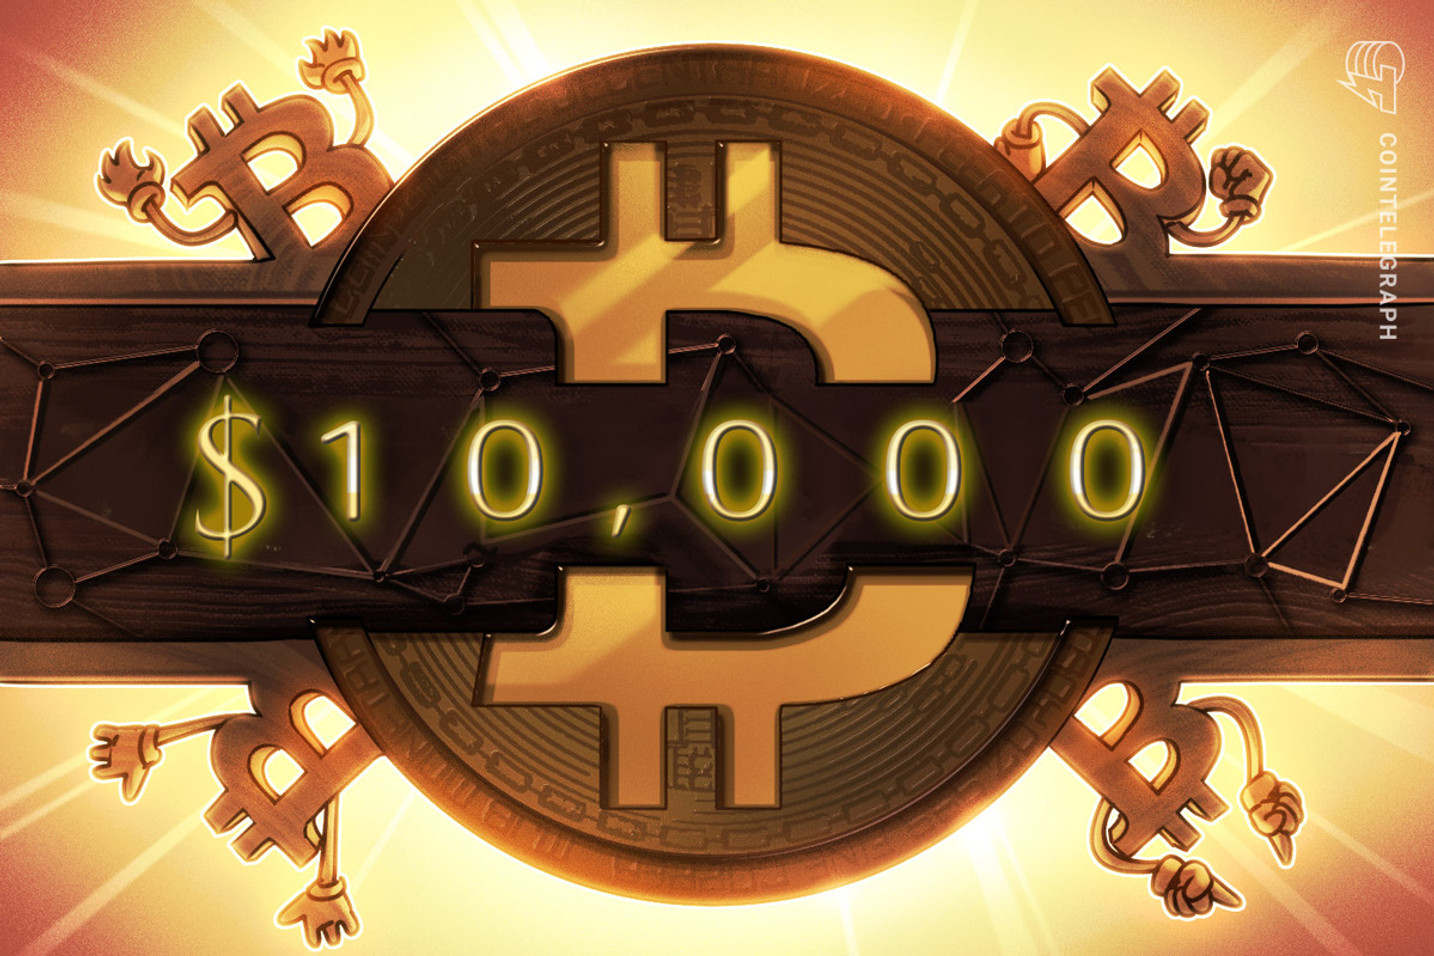 Bitcoin Struggling to Break $10,000, But Is Bearish Bias Warranted?